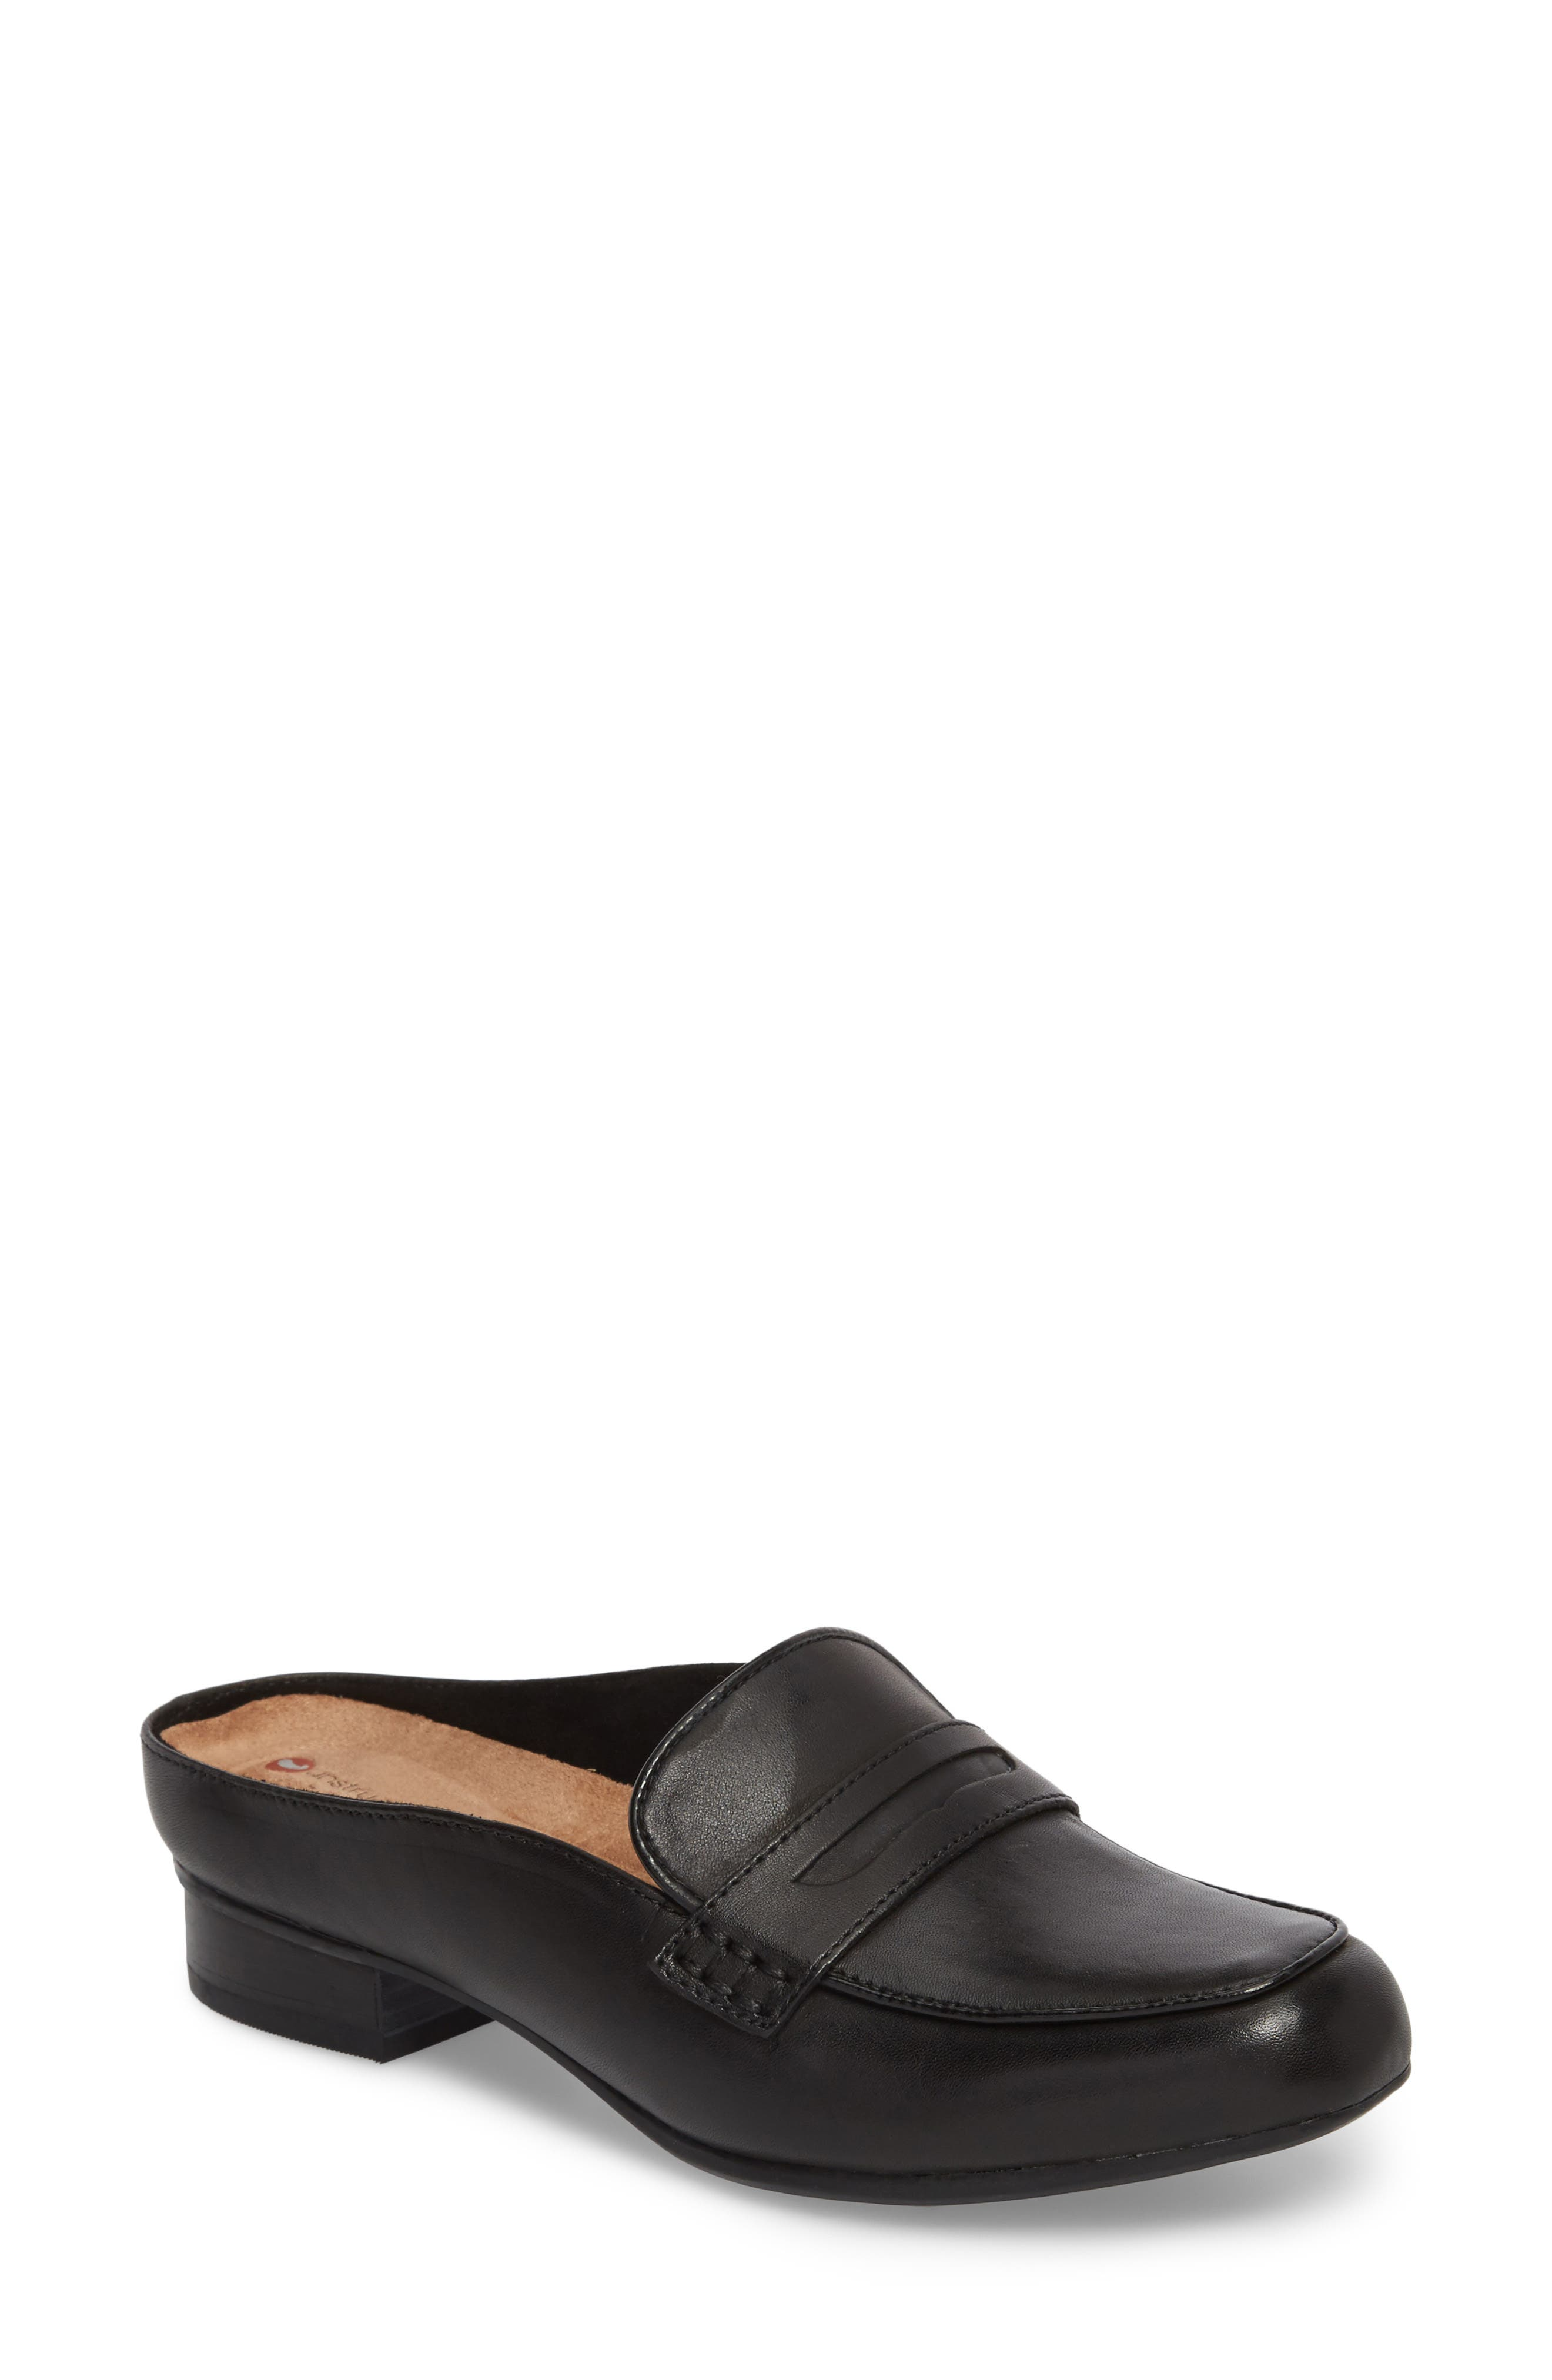 Alternate Image 1 Selected - Clarks® Keesha Donna Mule (Women)